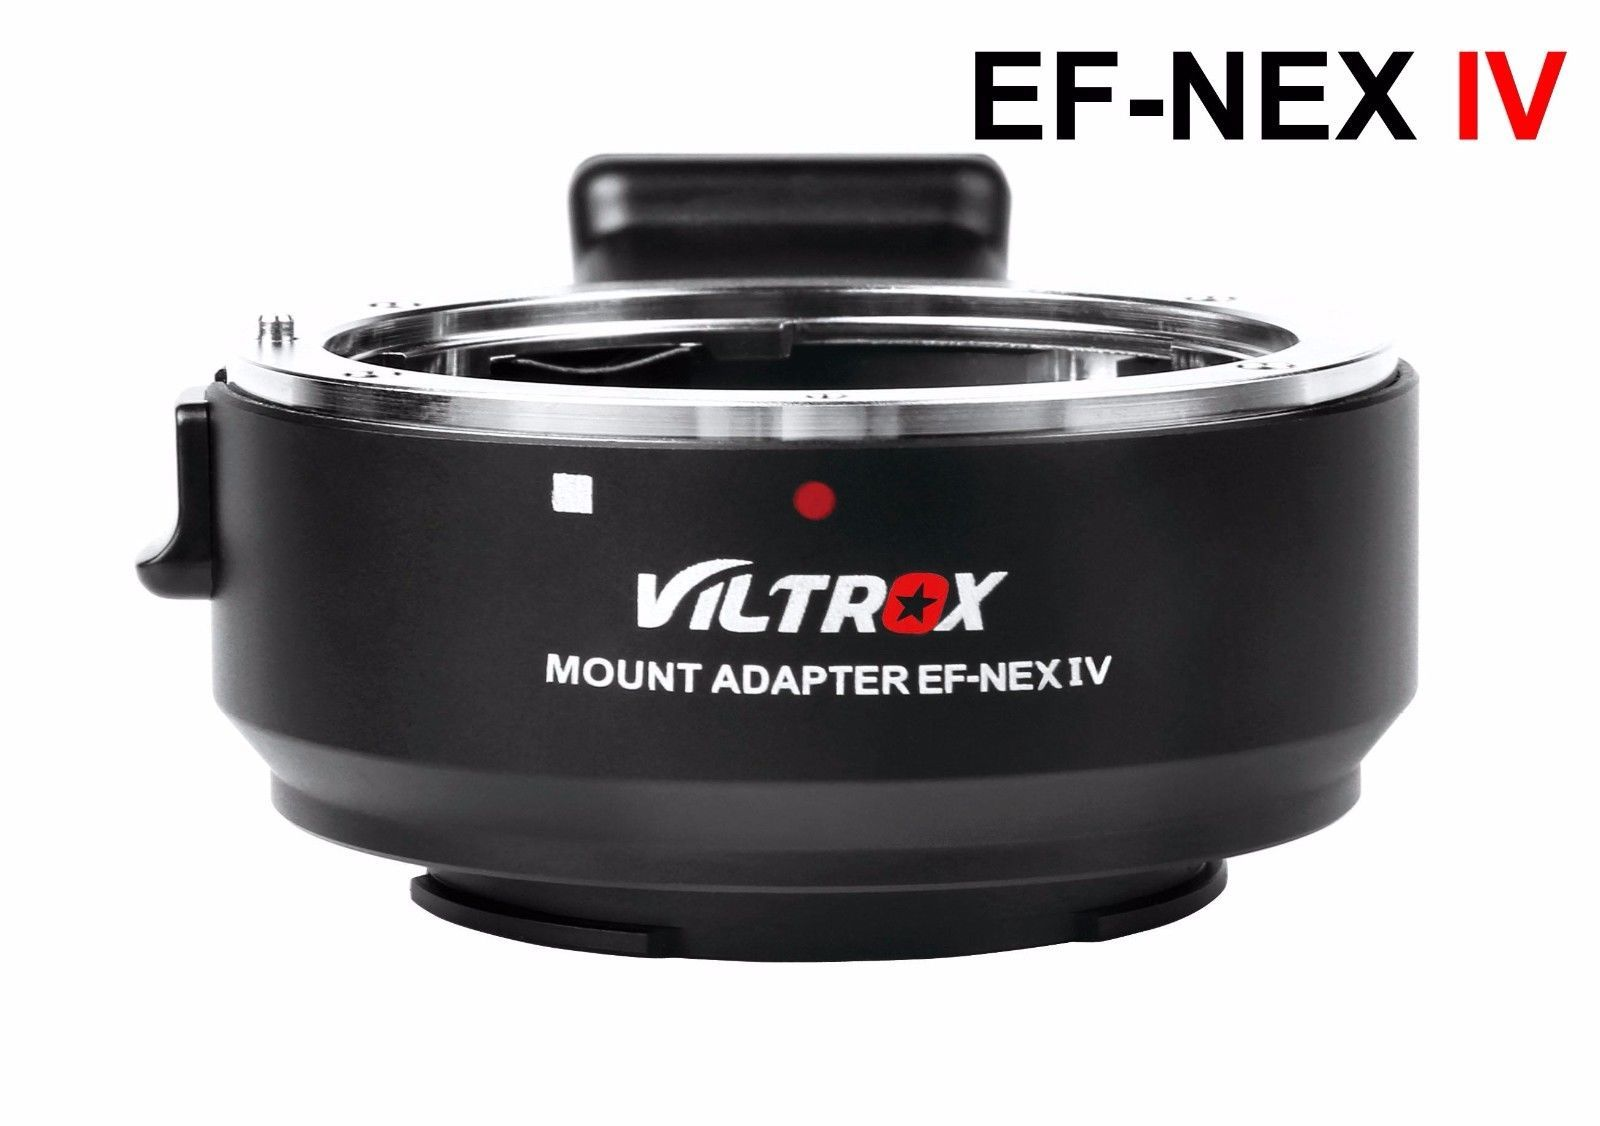 Viltrox EF-NEX IV Auto Focus Lens Adapter for Canon EOS EF EF-S Lens to Sony E NEX Full Frame A9 A7 A7II A7RII A7SII A6500 A6300